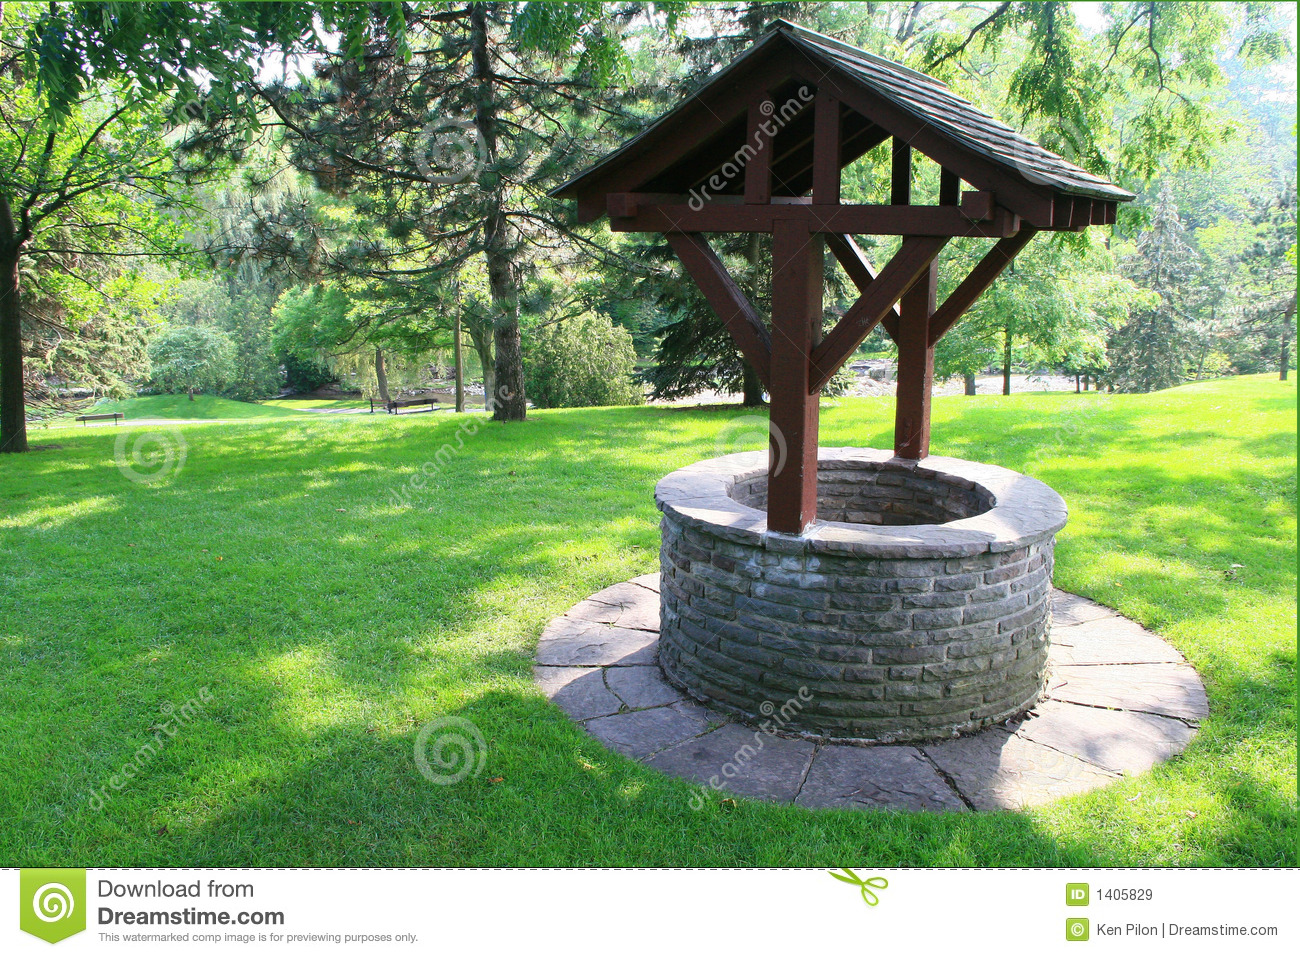 The Make a wish come true Wishing Well Stock Image